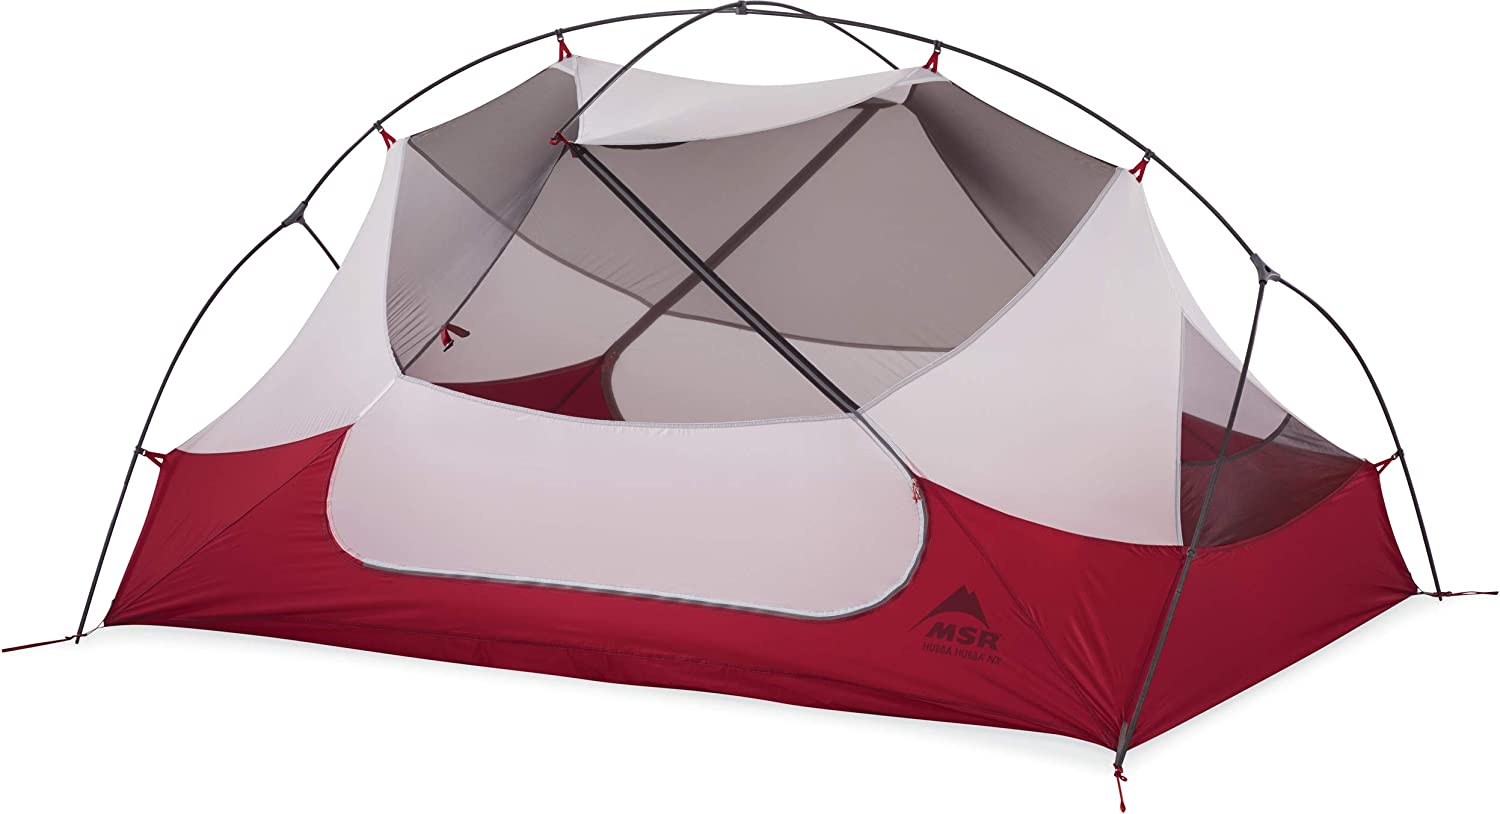 MSR Hubba Hubba NX 2-Person Lightweight Backpacking Tent